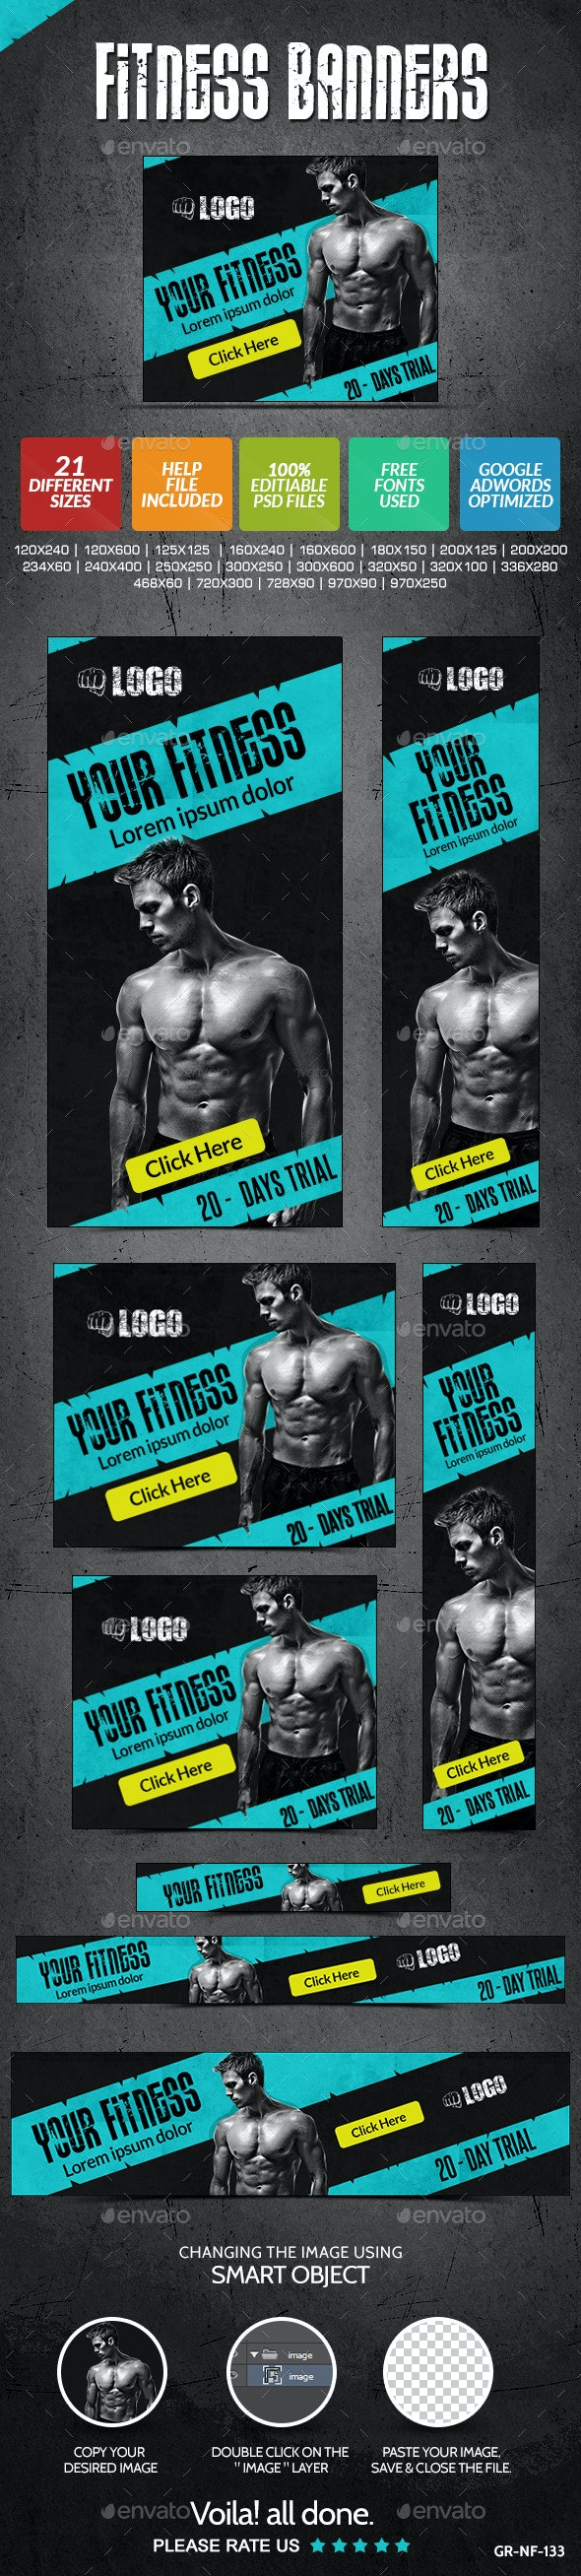 Fitness & Gym Banners - Banners & Ads Web Elements